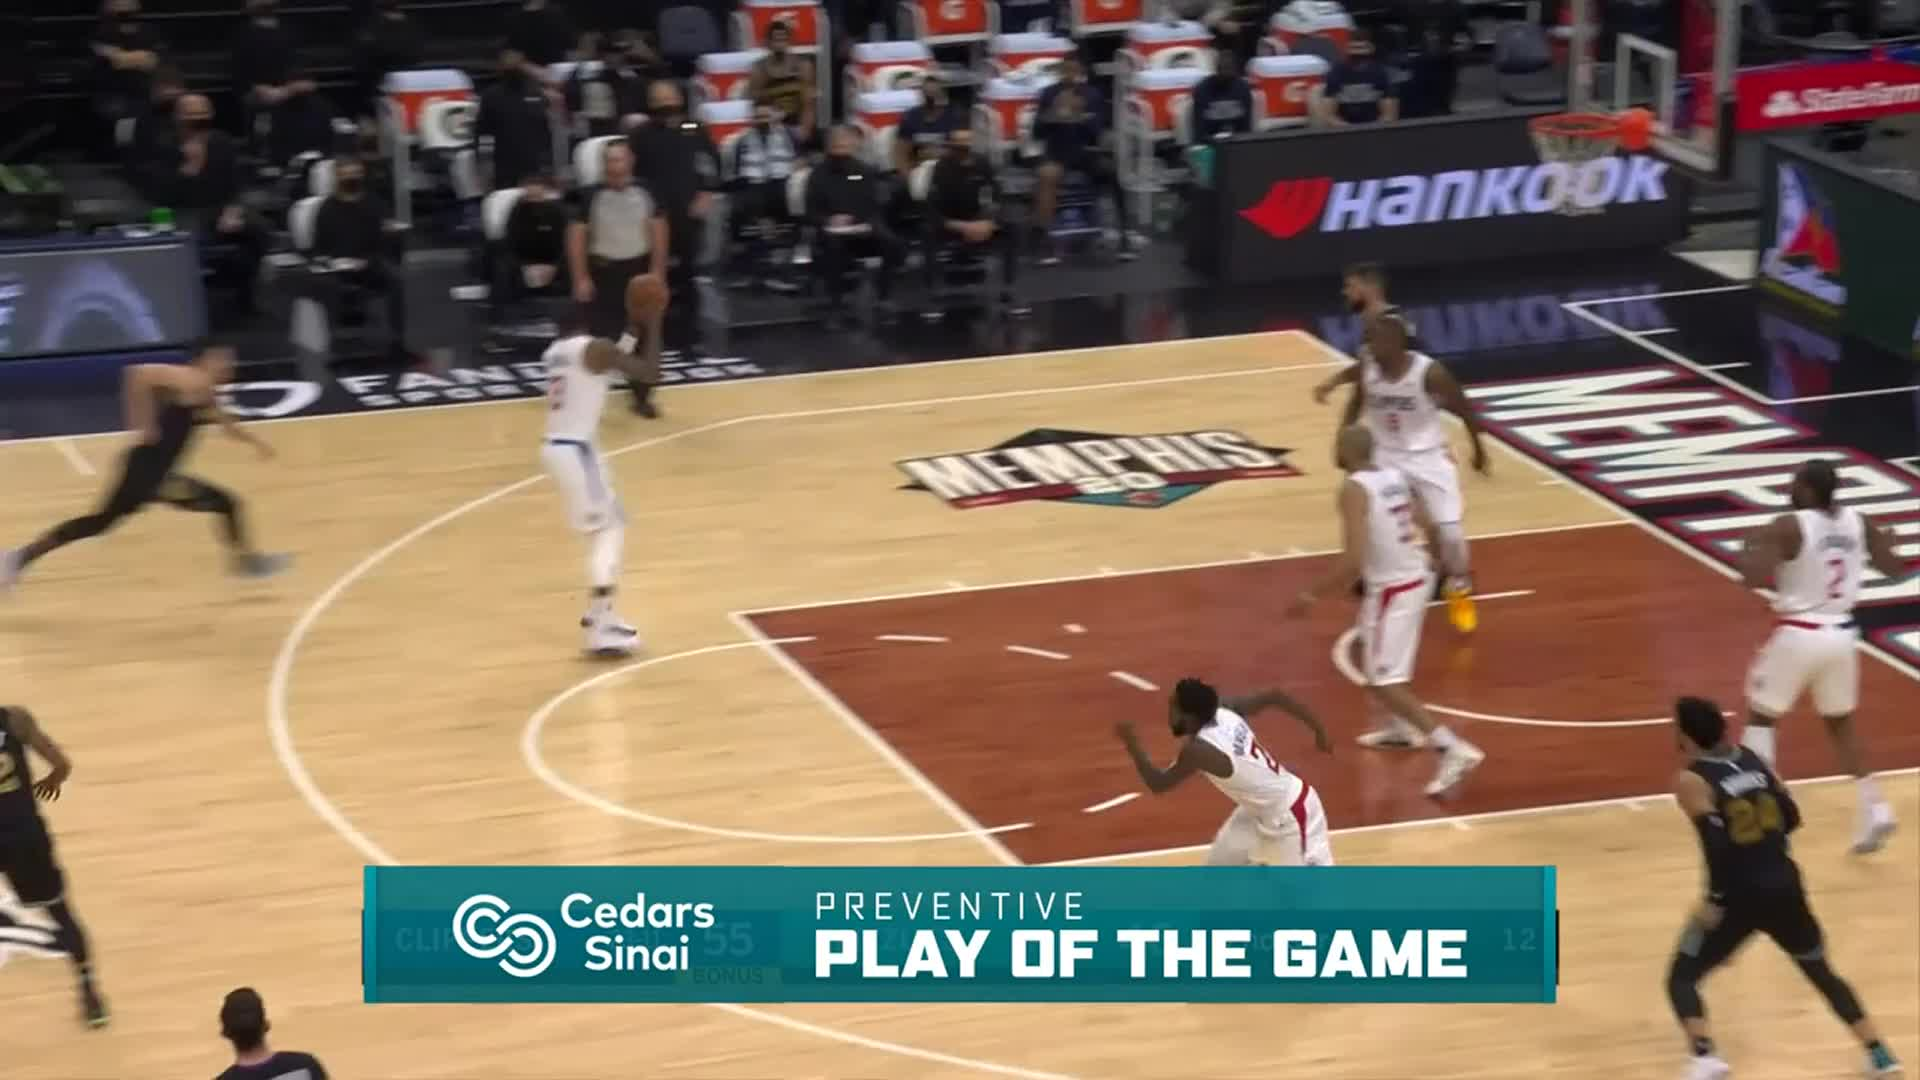 Cedars-Sinai Preventive Play of the Game | Clippers vs Grizzlies (2.26.21)